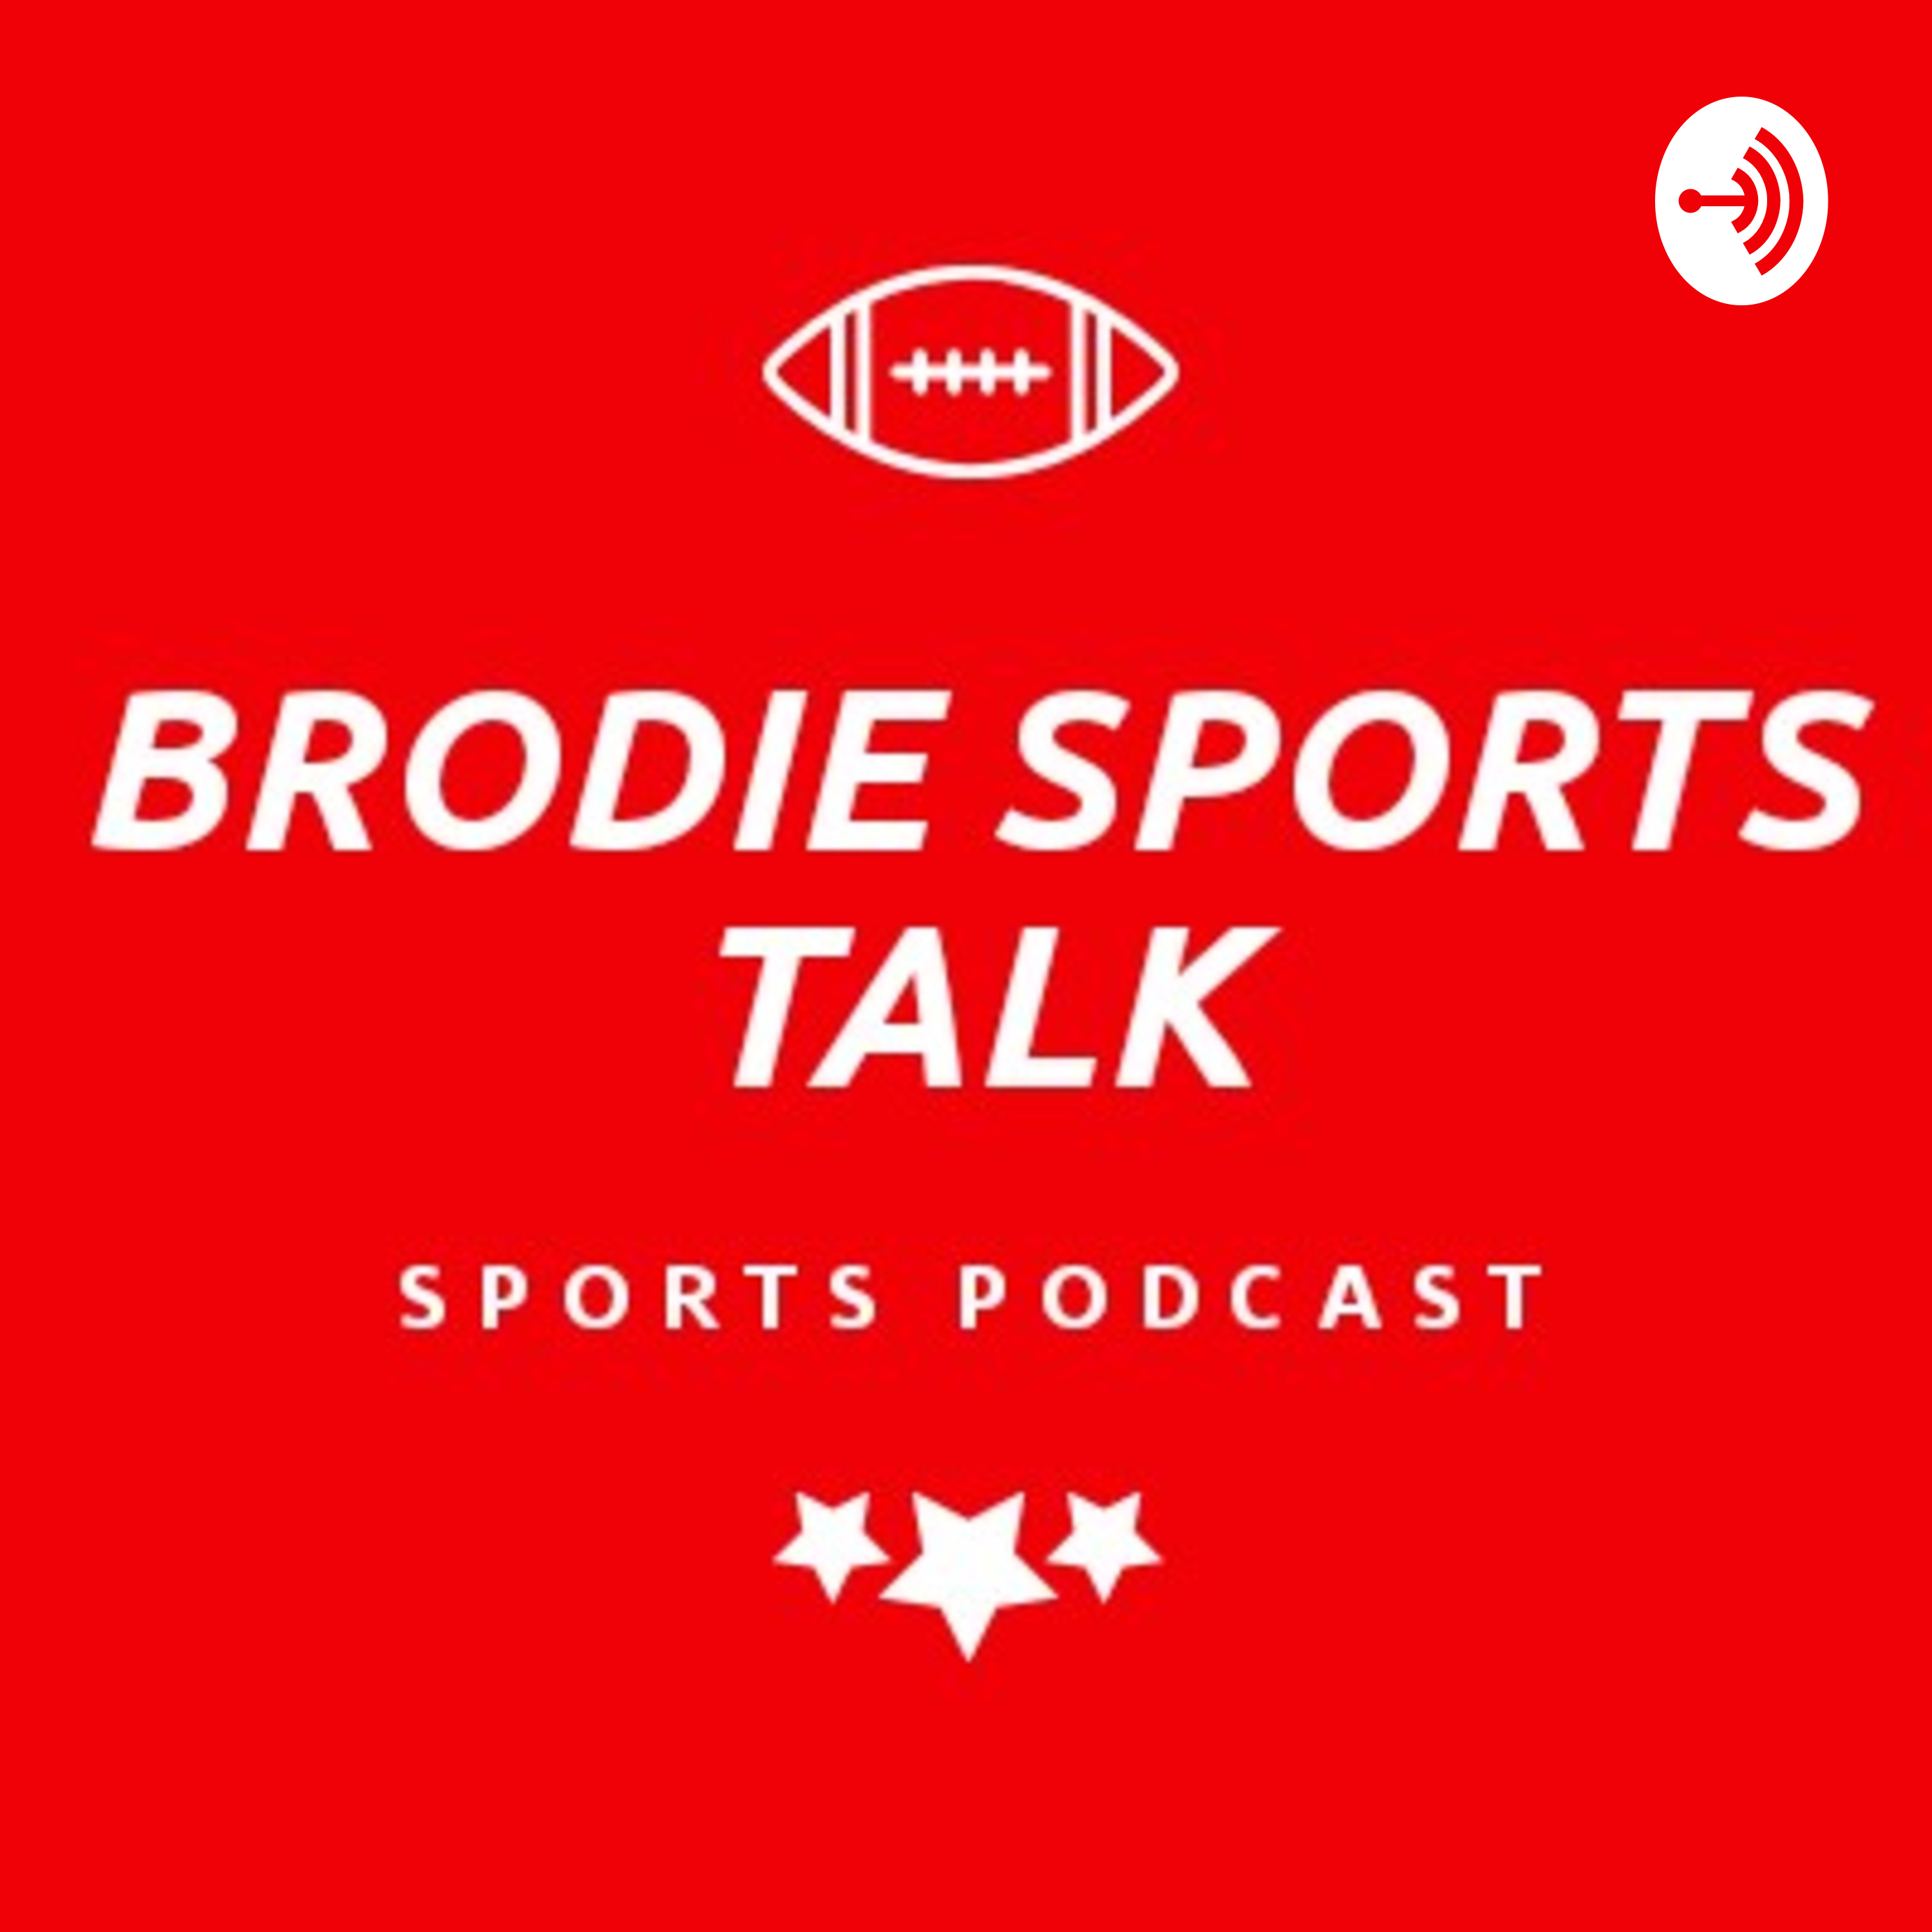 Earl Thomas Released, US Open Tennis Preview, Oklahoma State Fantasy Football, and Thunder/Rockets series update. Episode 56.